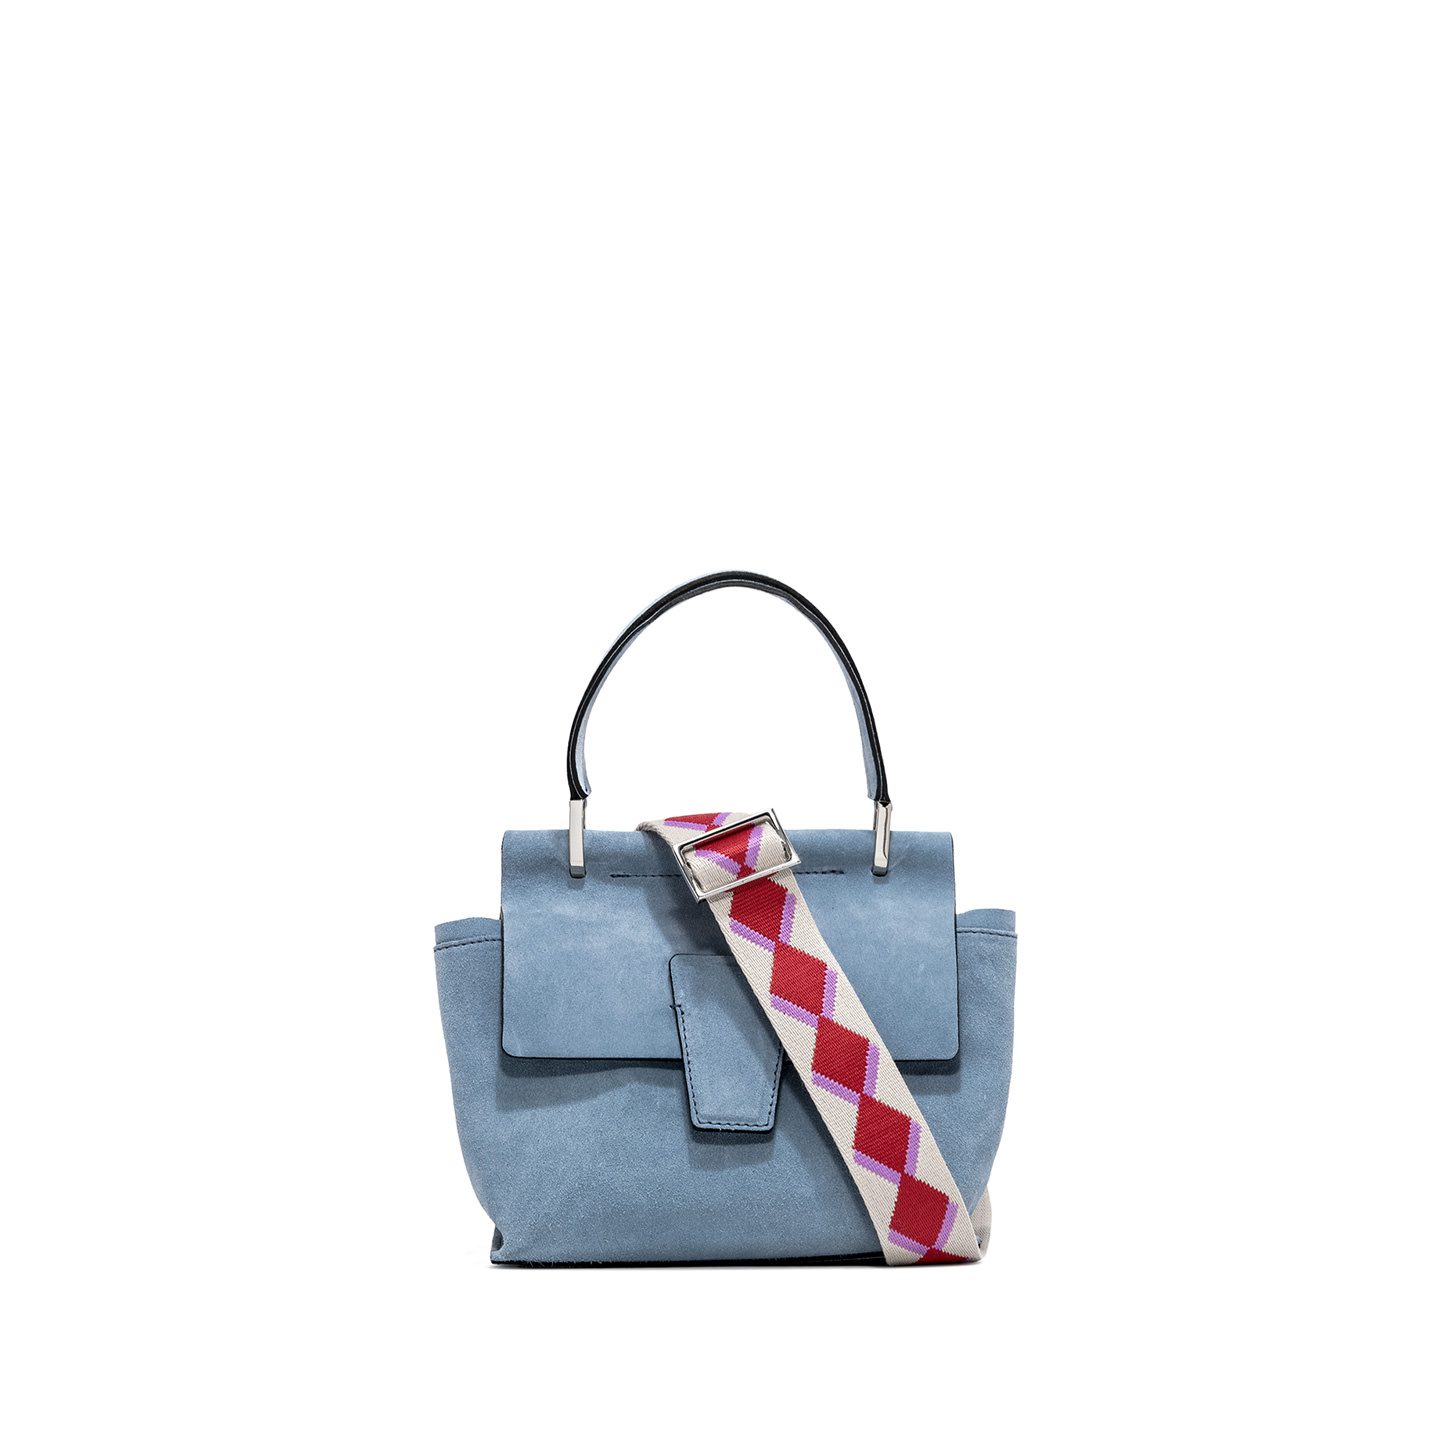 GIANNI CHIARINI: ELETTRA CAMOSCIO SMALL LIGHT BLUE HANDBAG